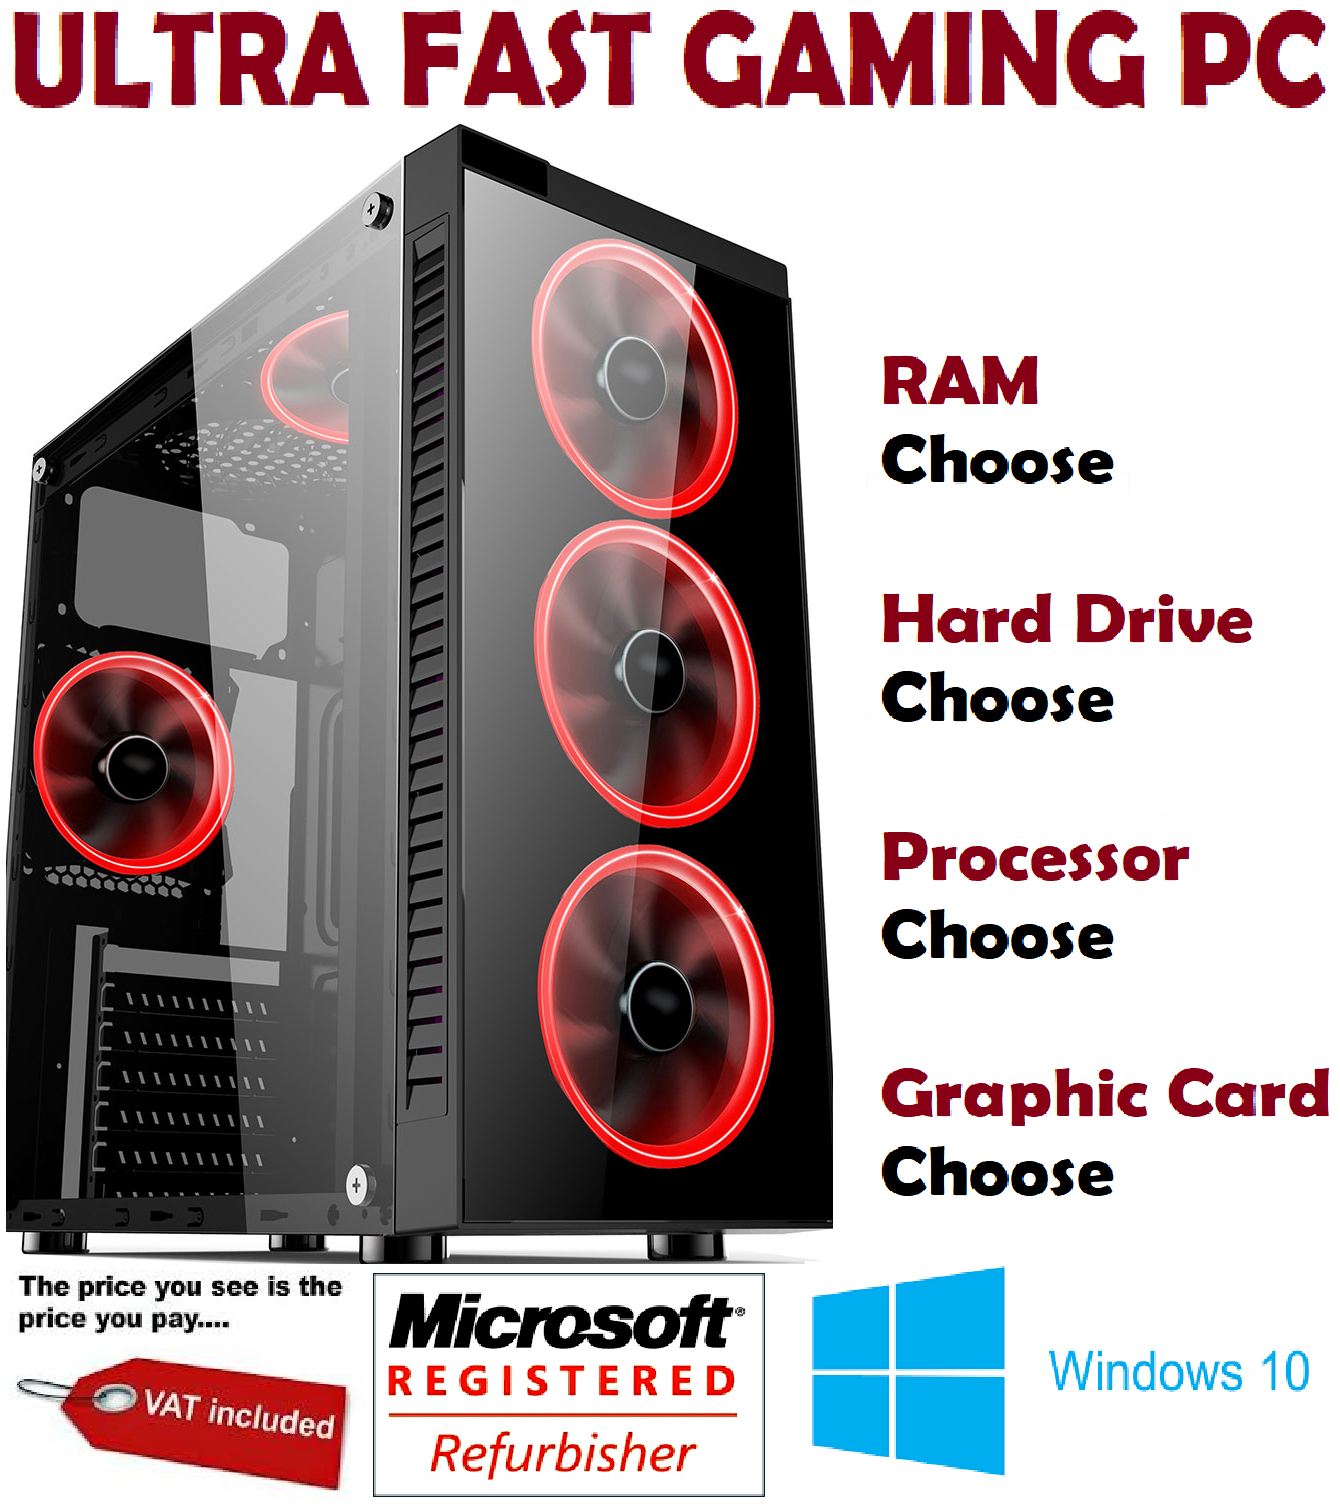 Computer Games - ULTRA FAST i5 i7 Desktop Gaming Computer PC SSD 2TB 16GB RAM GTX 1660 Windows 10